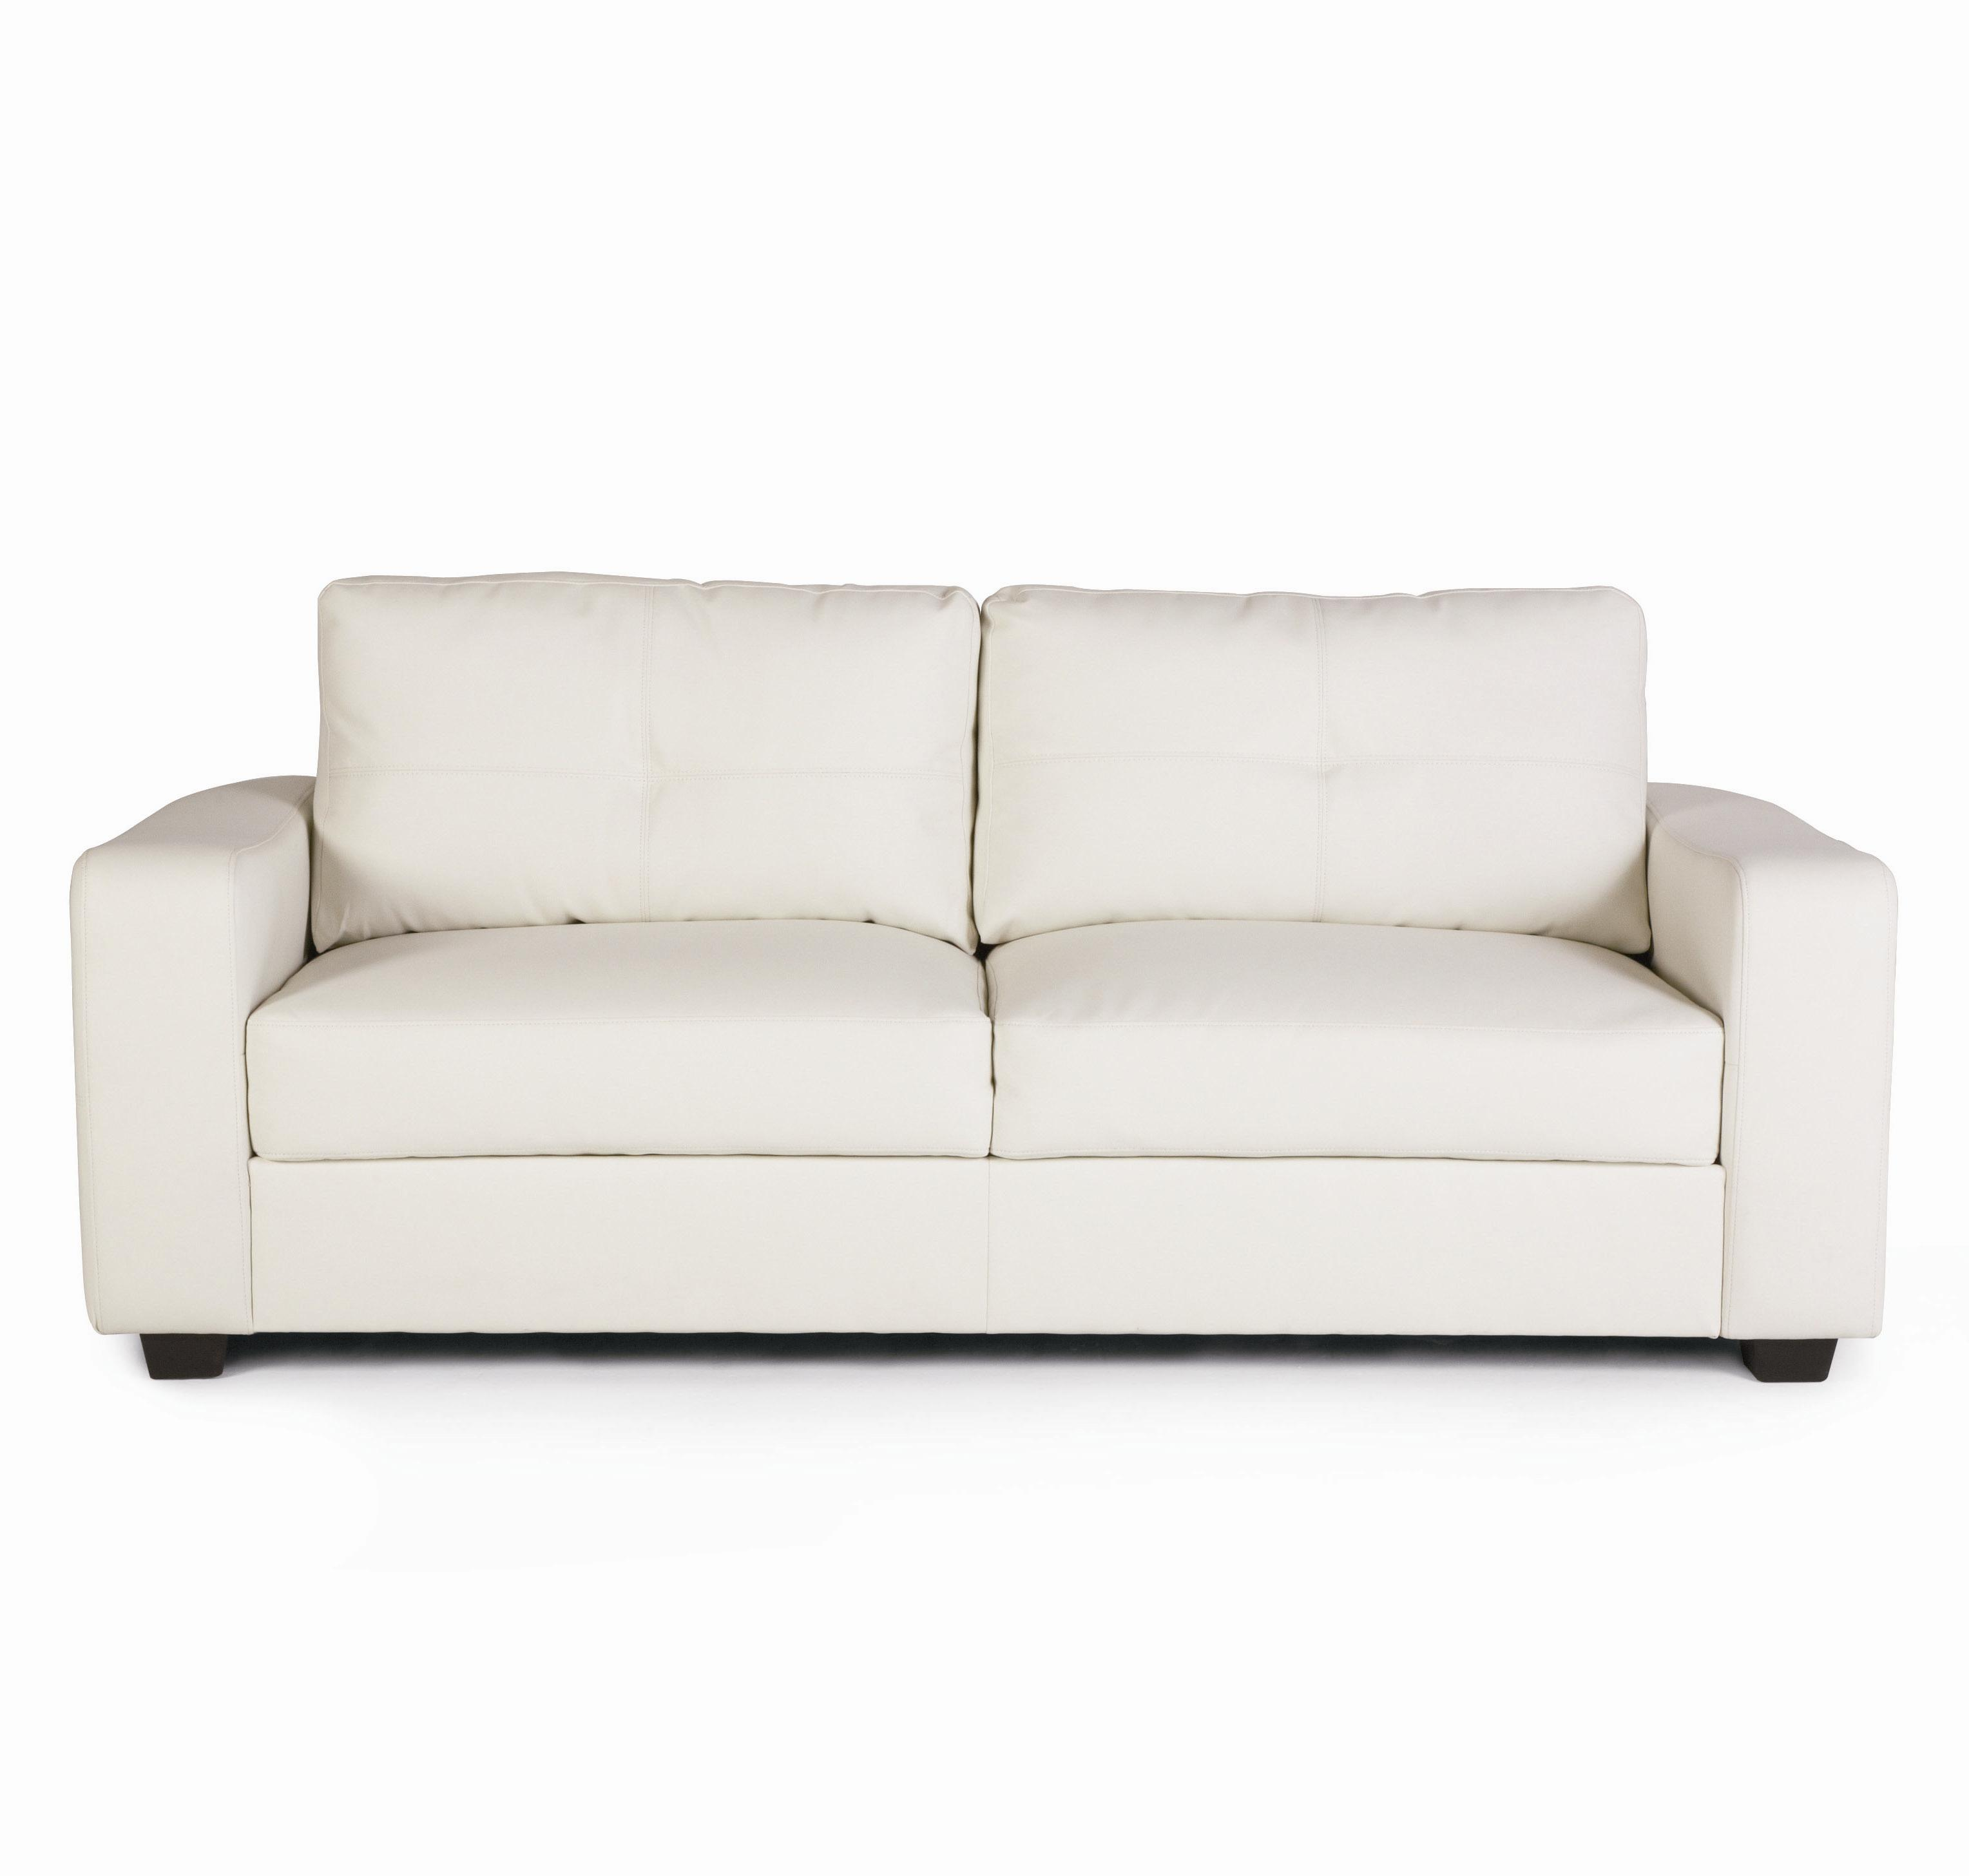 White Leather Sectional Sofa Bed: Petition Edward Luvs White Sofa